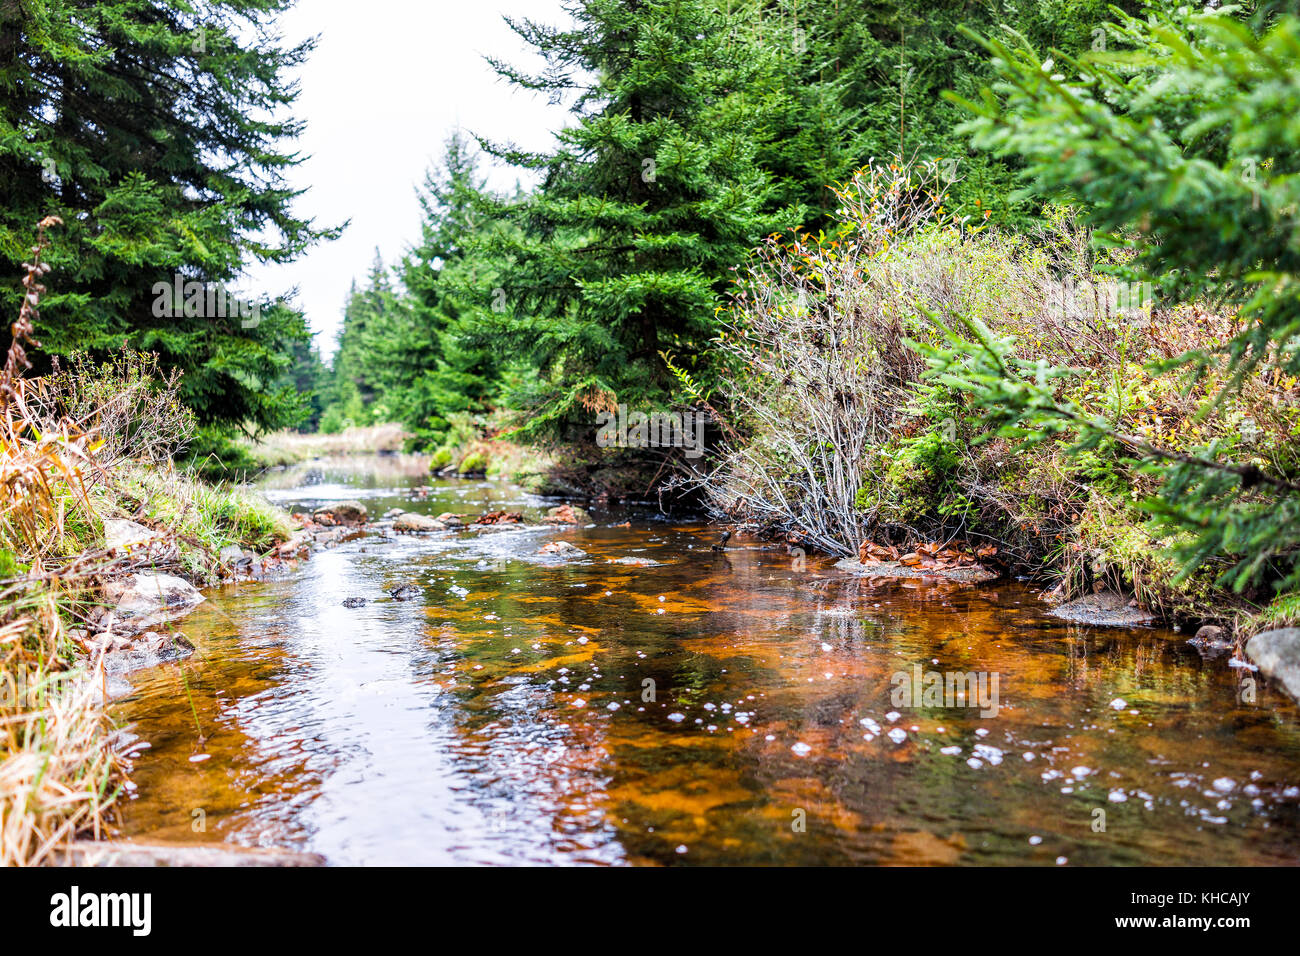 Closeup of red creek in Dolly Sods, West Virginia during autumn, fall with green pine tree forest and water river - Stock Image